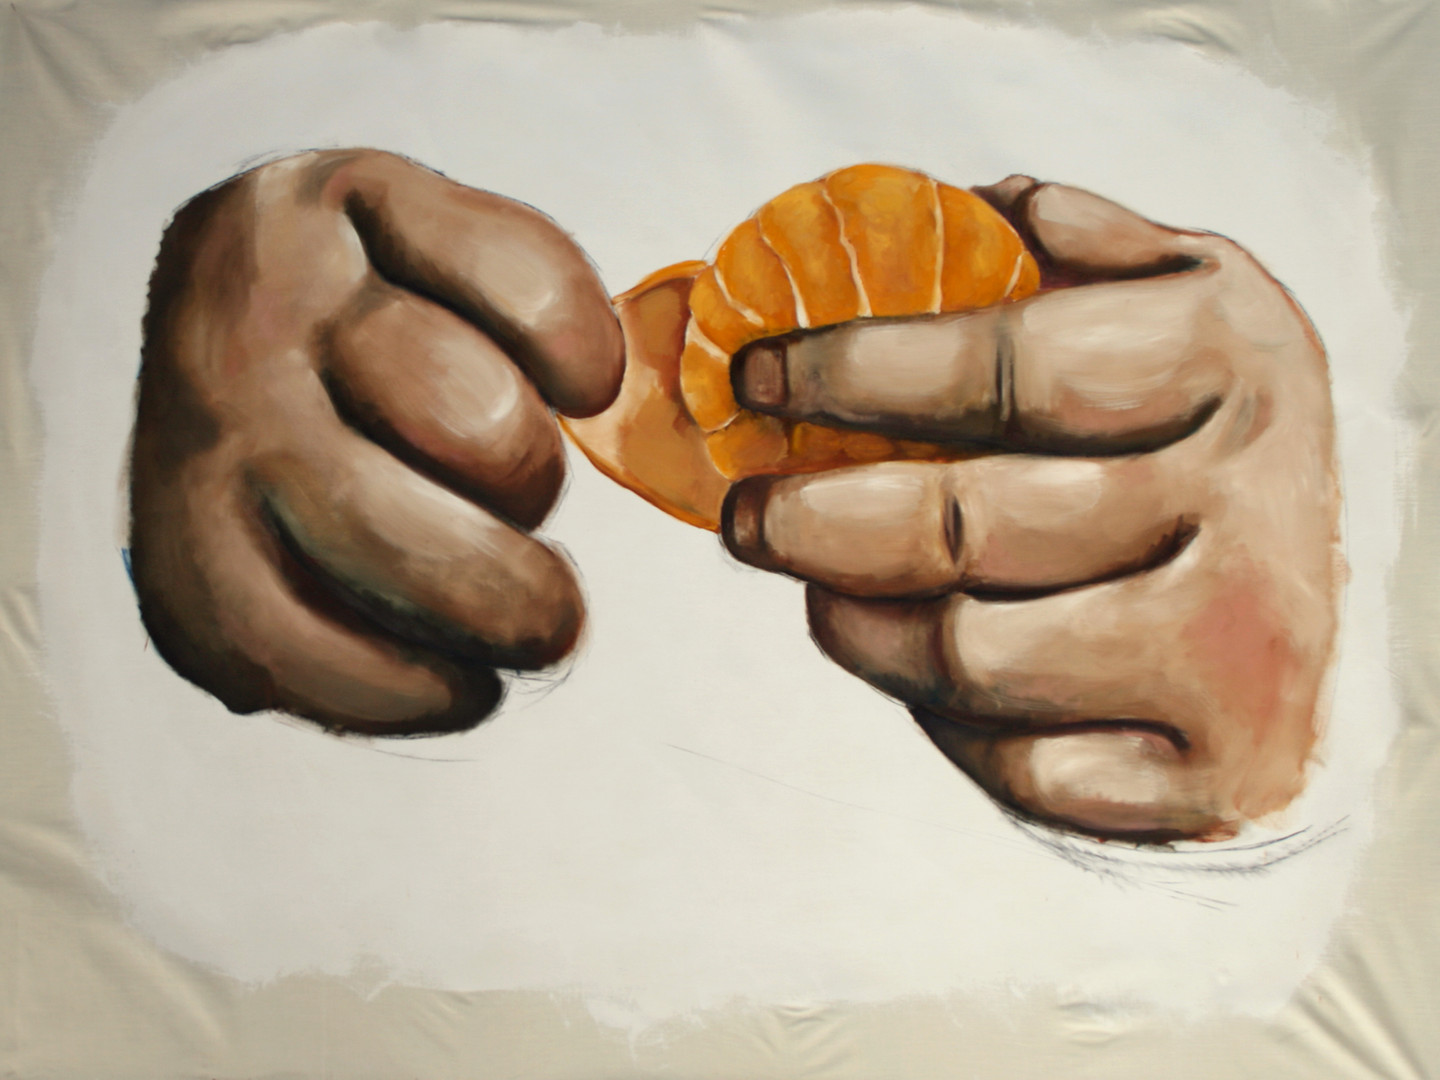 Child's hands with mandarin